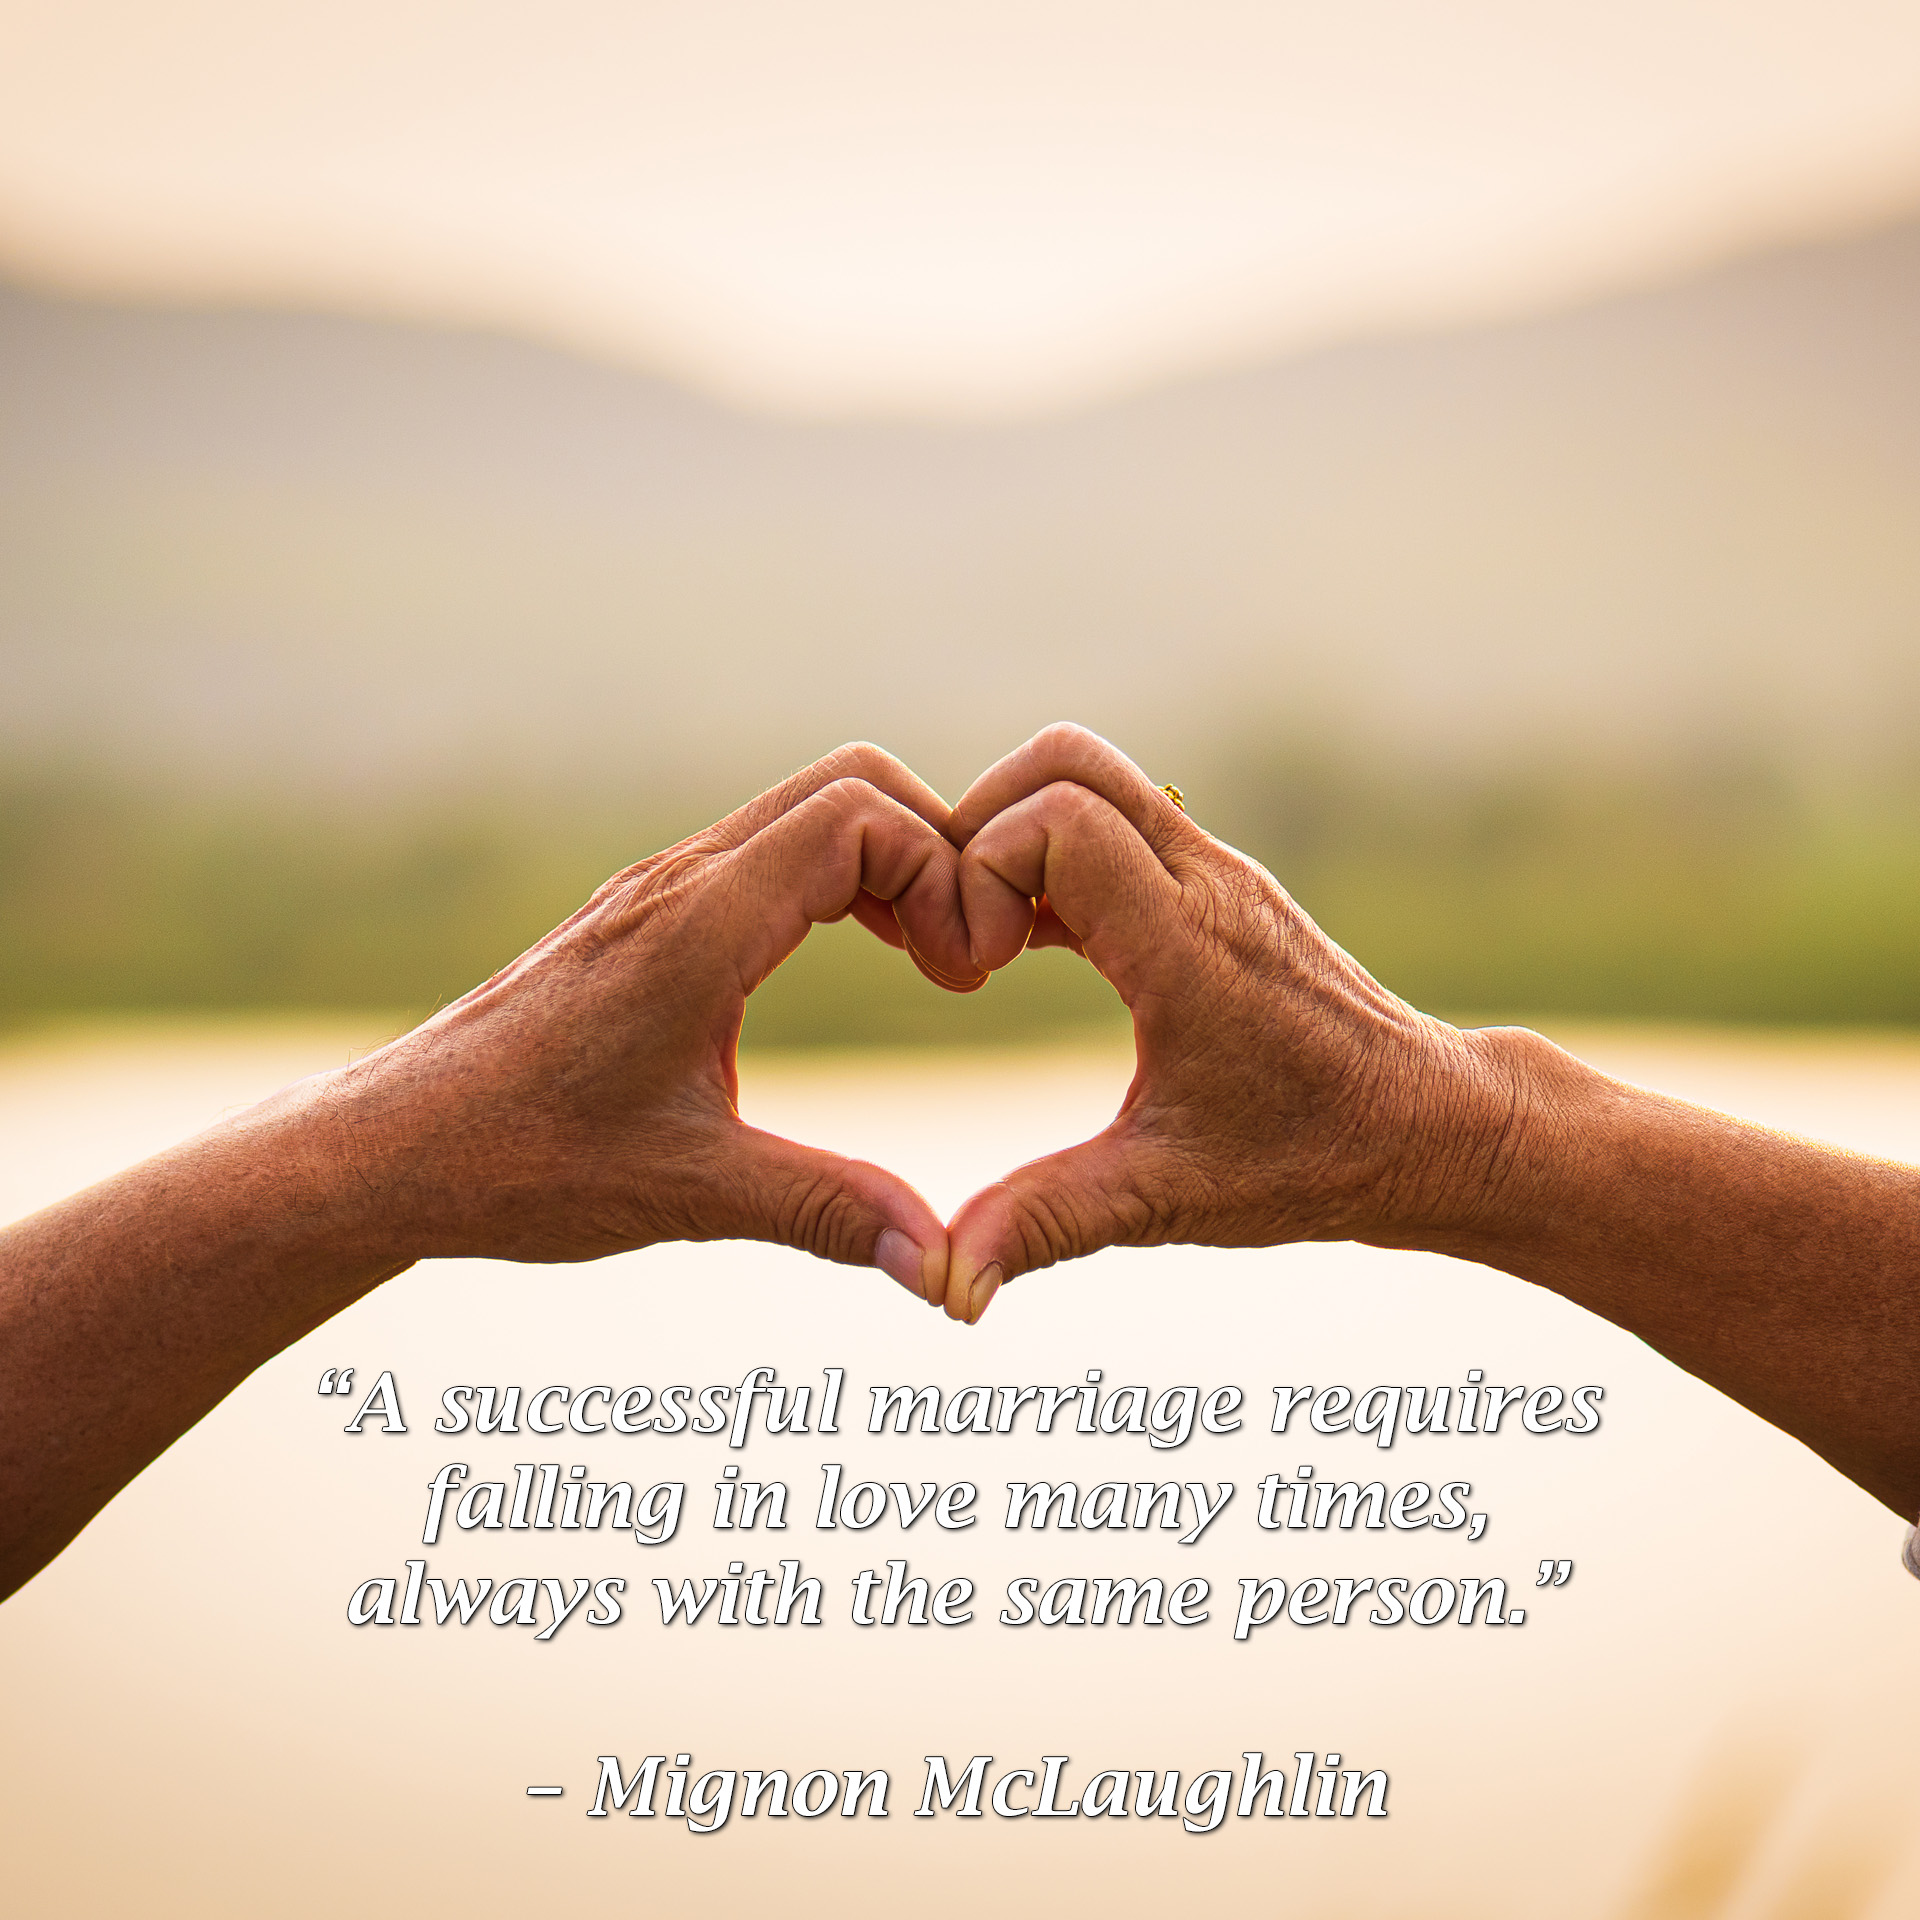 """A successful marriage requires falling in love many times, always with the same person."" - Mignon McLaughlin - Love Smarts - Be ""Love Smart"" in a love-challenged world!"